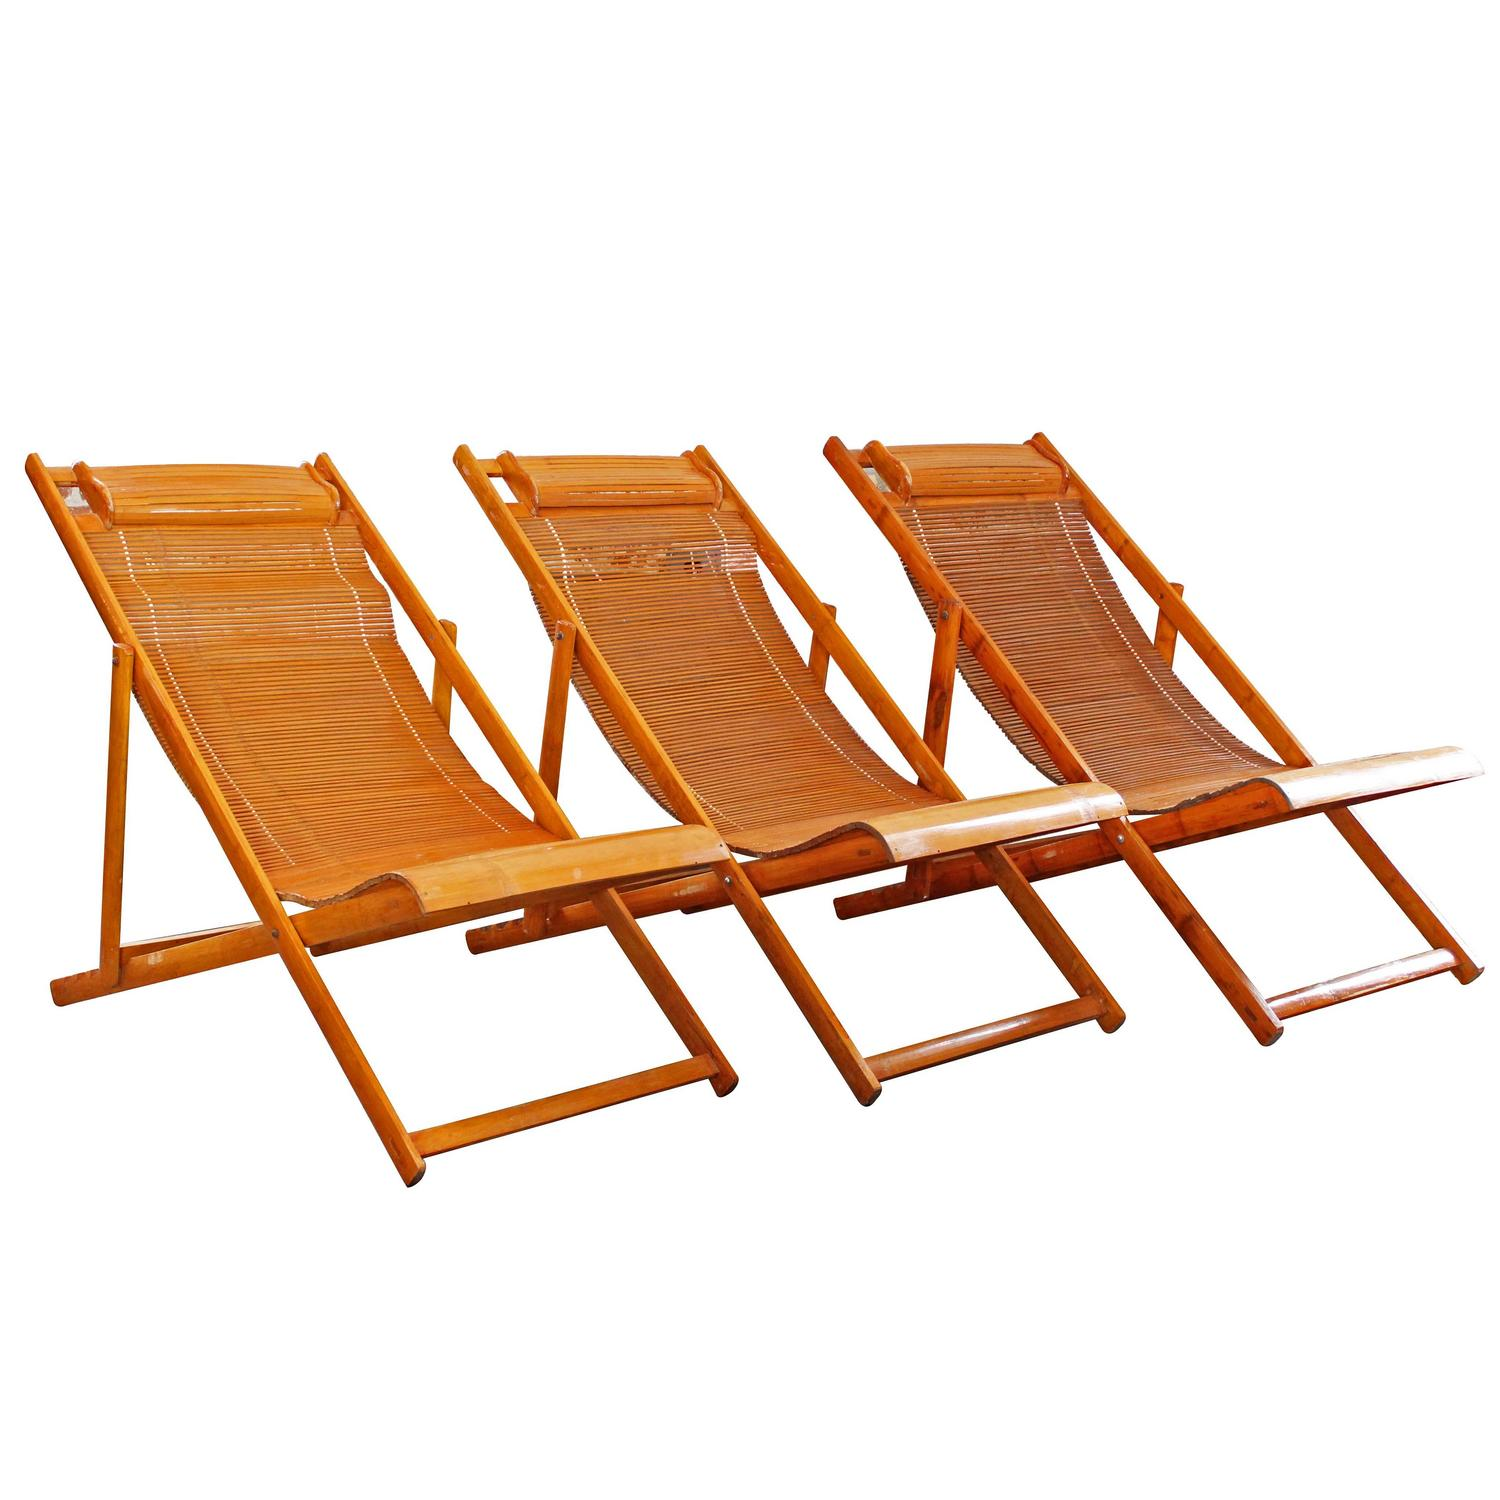 Japanese Chair Vintage Bamboo Wood Japanese Deck Chairs Outdoor Fold Up